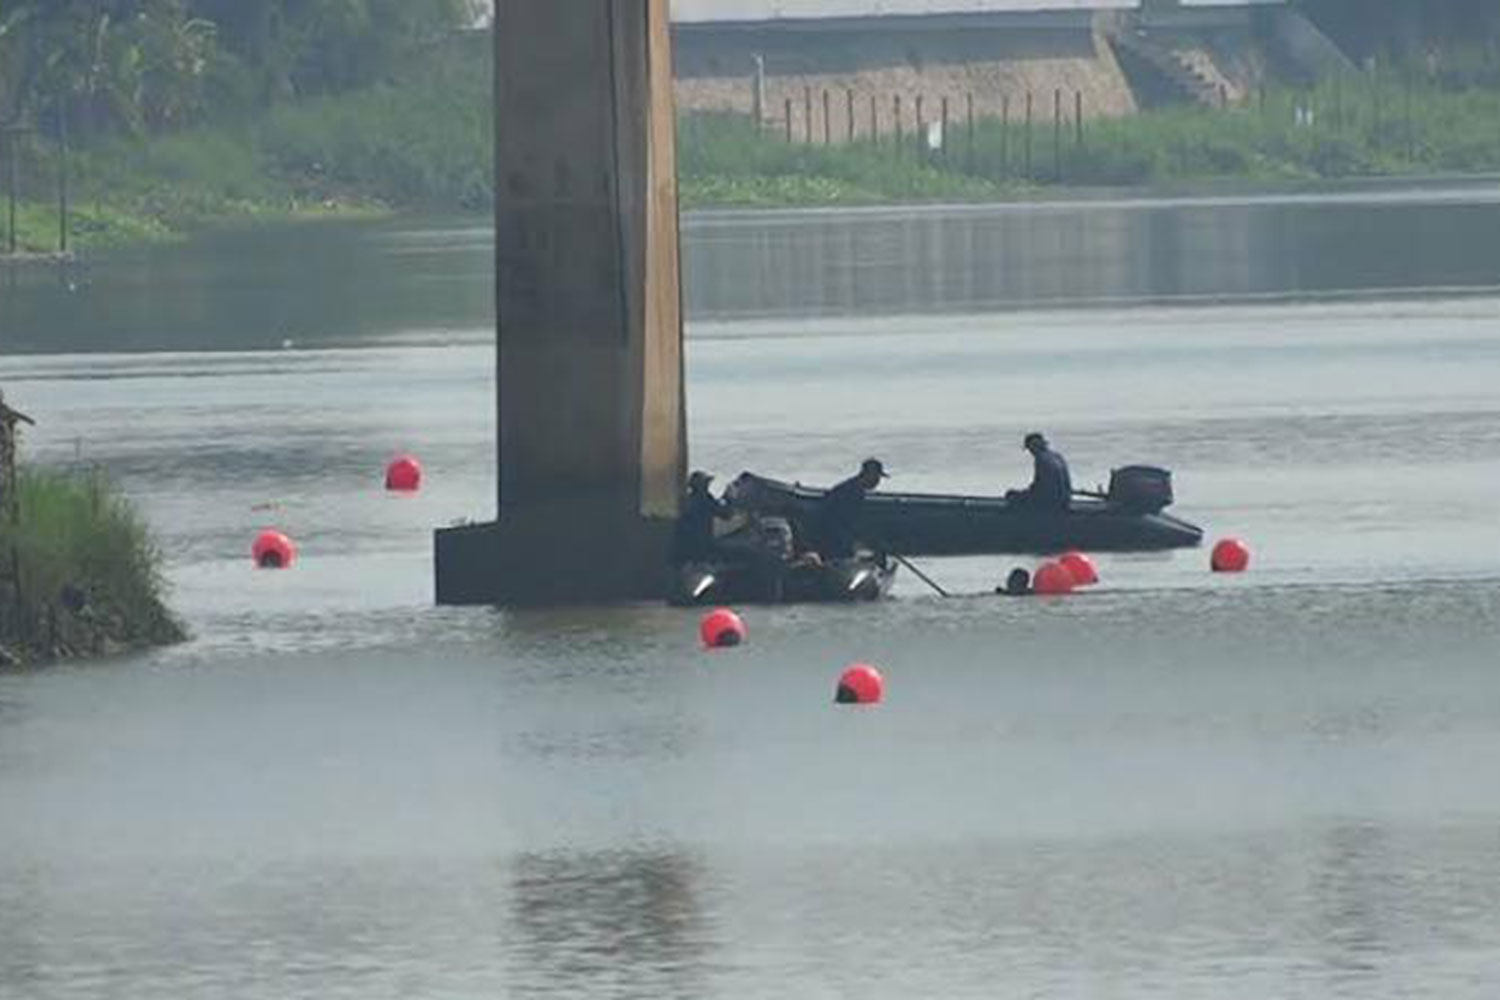 Buoys are moord on the Mae Klong River to mark the spots where unexploded ordnance is located. (Photo by State Railway of Thailand)